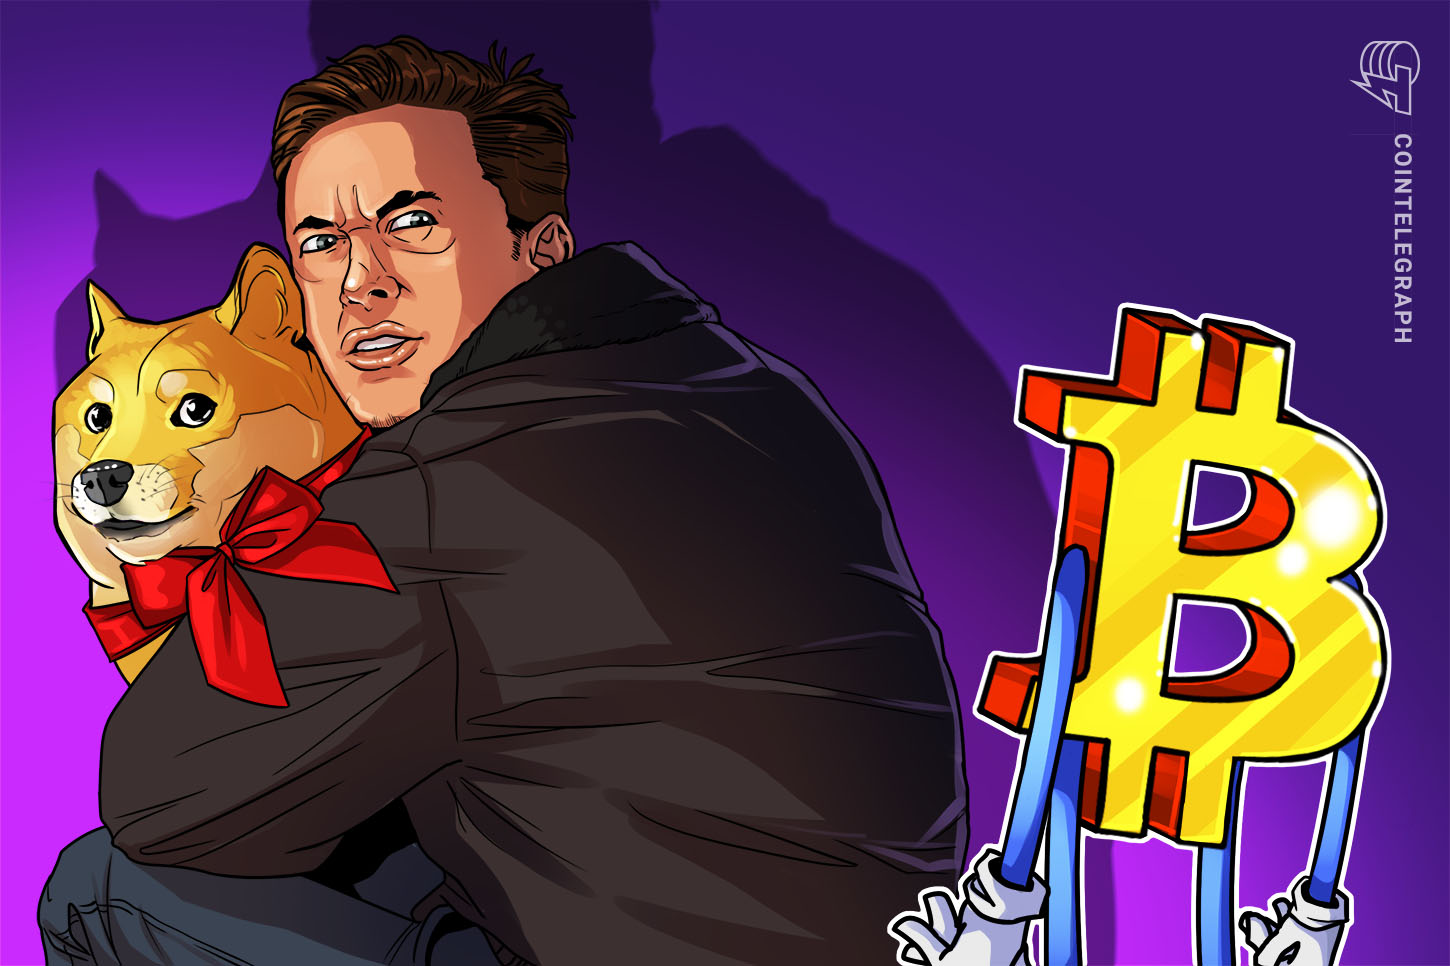 No, Musk, don't blame Bitcoin for dirty energy — The problem lies deeper